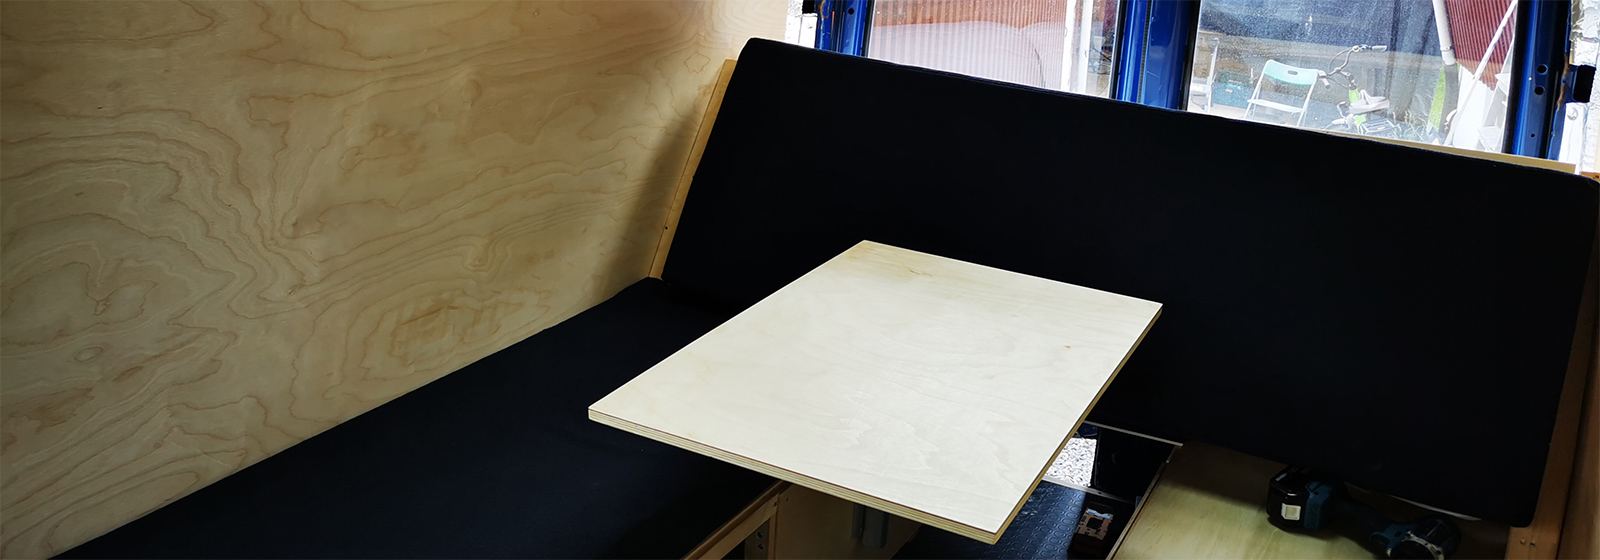 Article image for Matress covers, table and starting on the kitchen